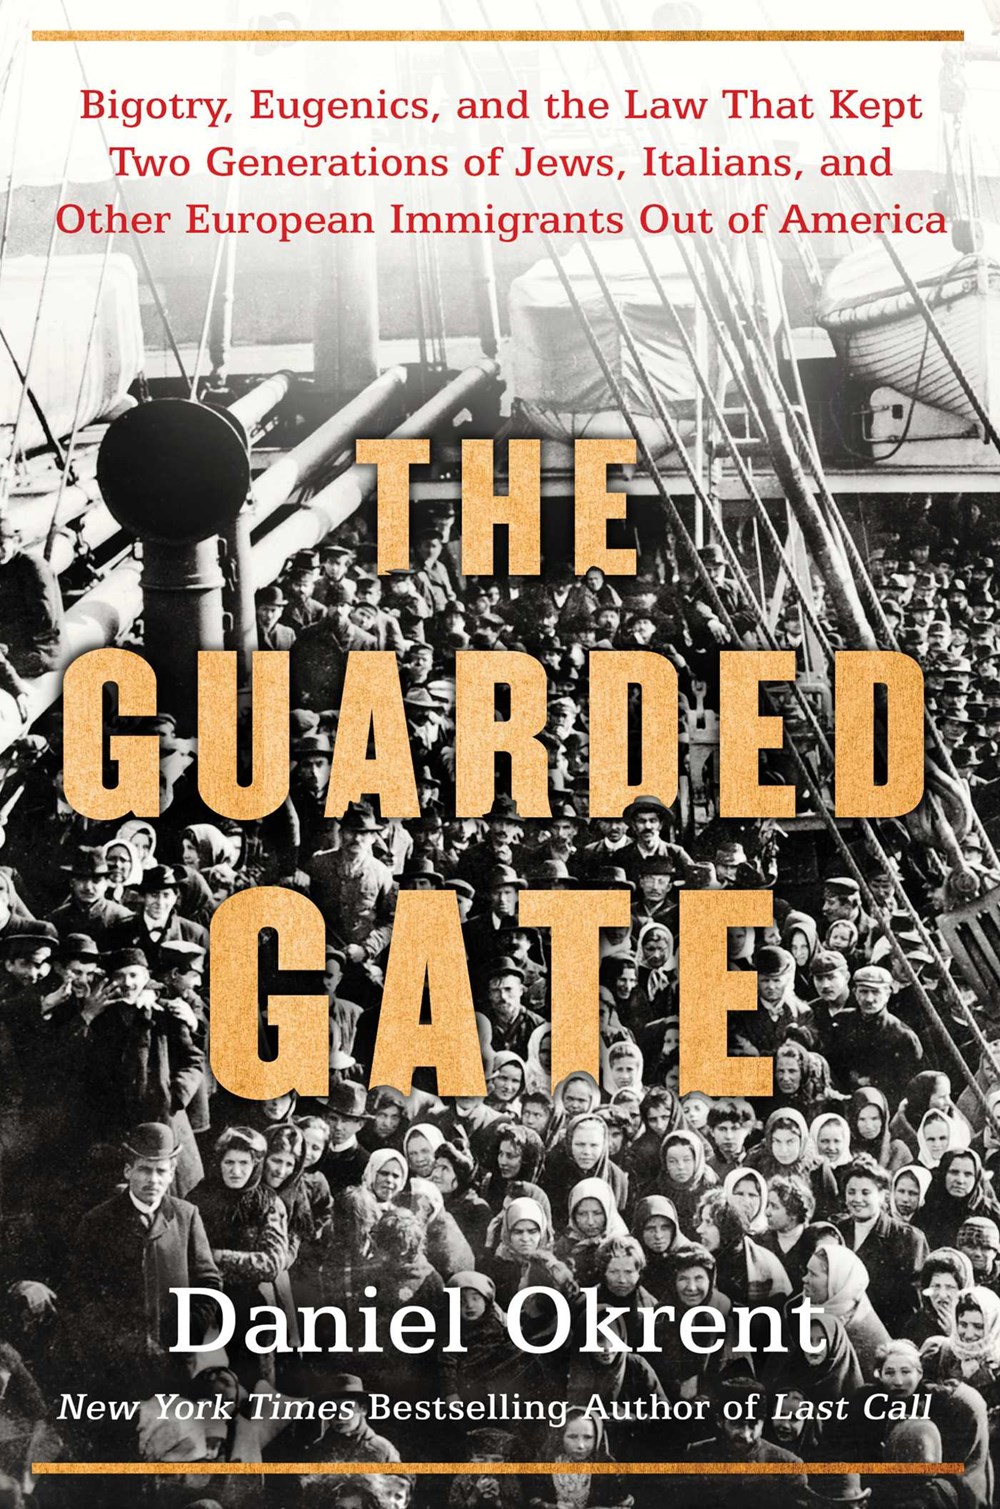 Daniel Okrent - The Guarded Gate